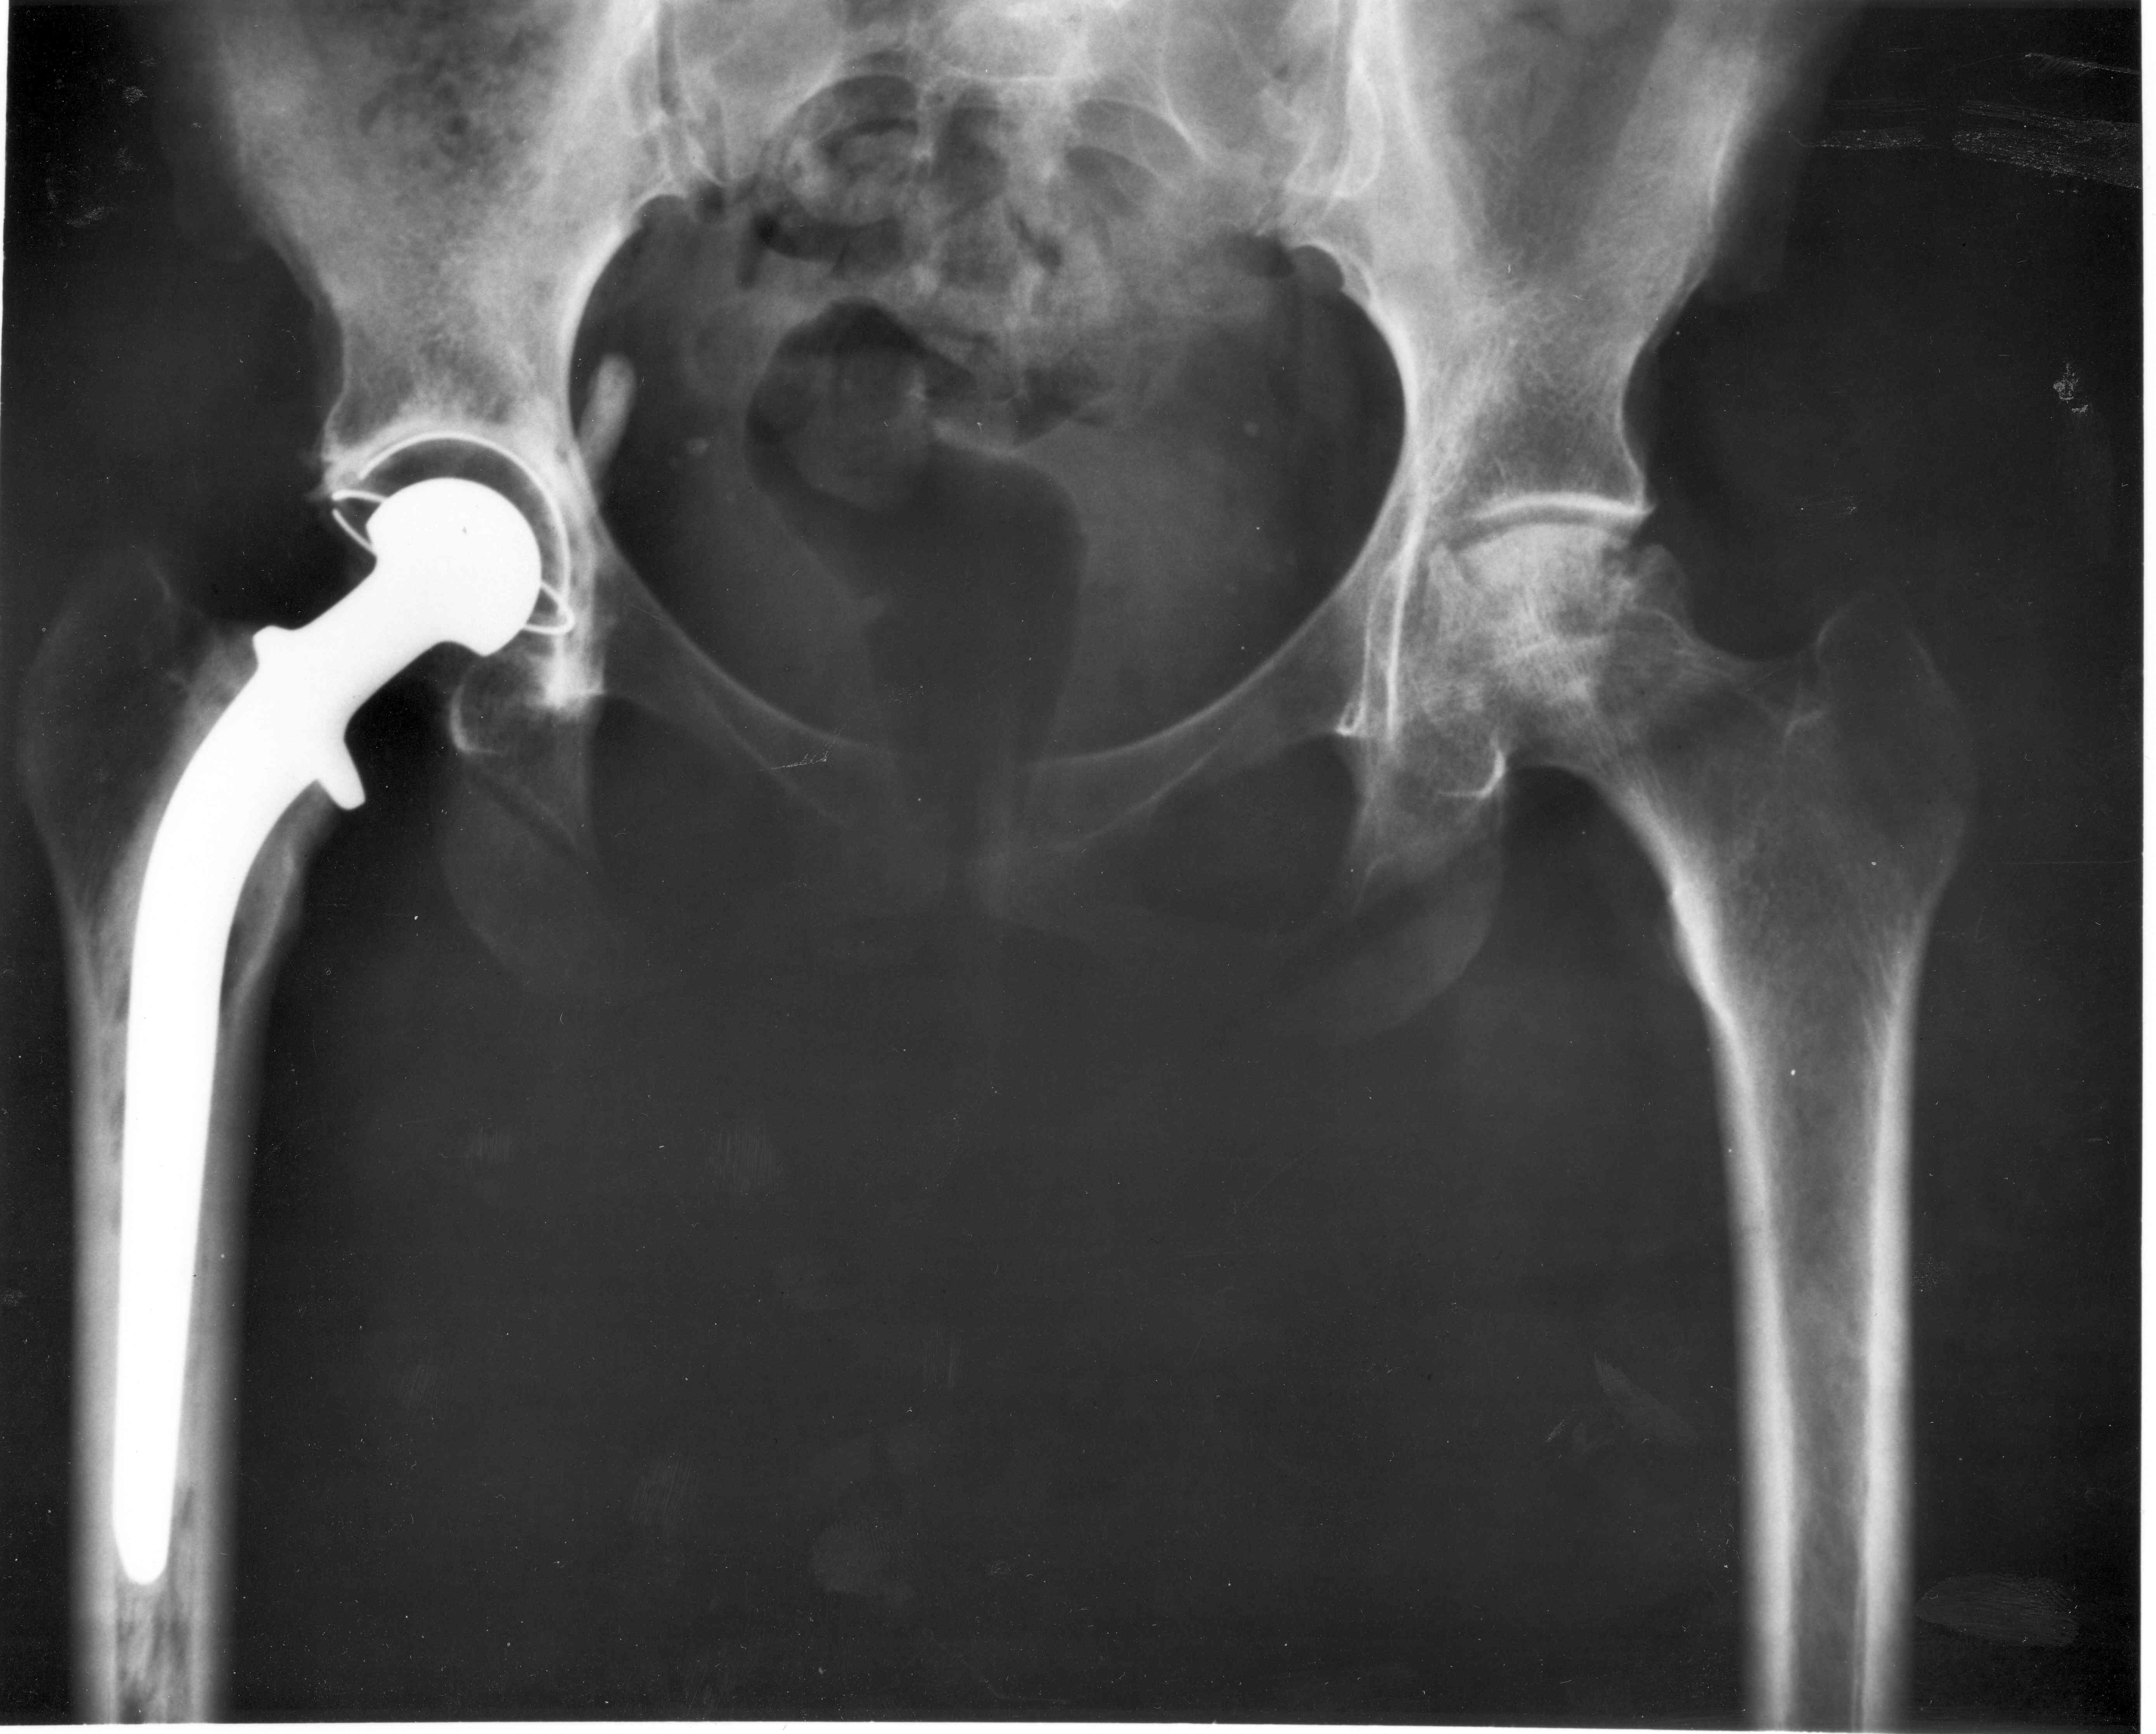 hip replacement Hip replacement may be an option if your hip pain interferes with daily activities and conservative treatments haven't helped.